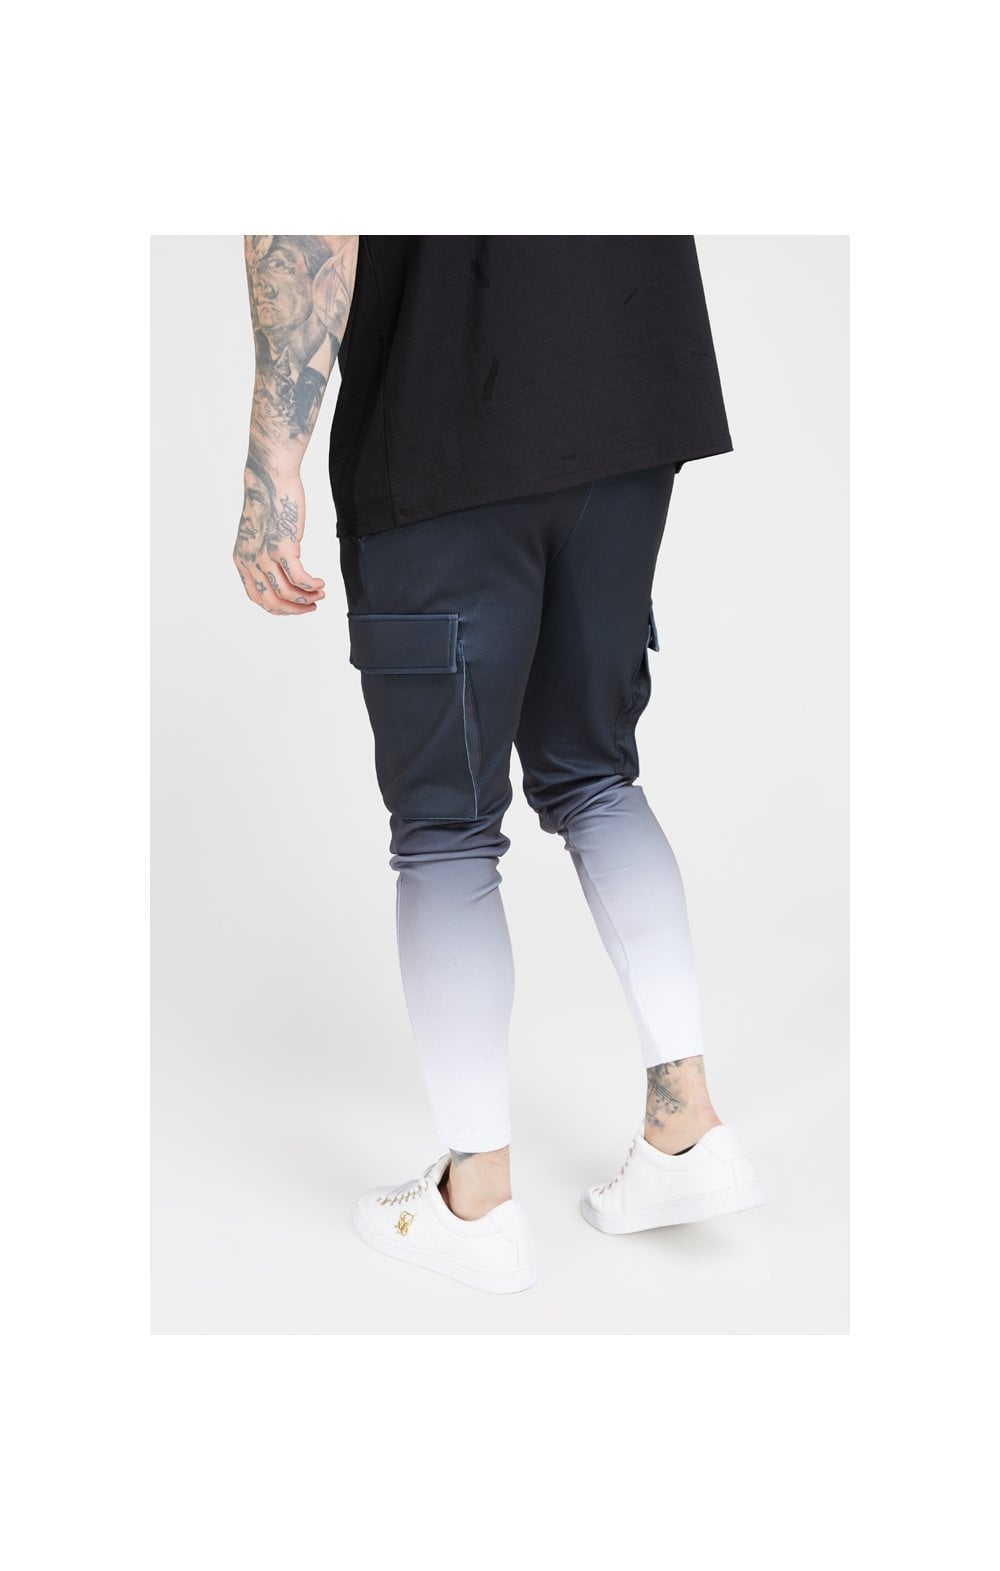 Load image into Gallery viewer, SikSilk Poly Athlete Cargo Pants - Black & White (3)